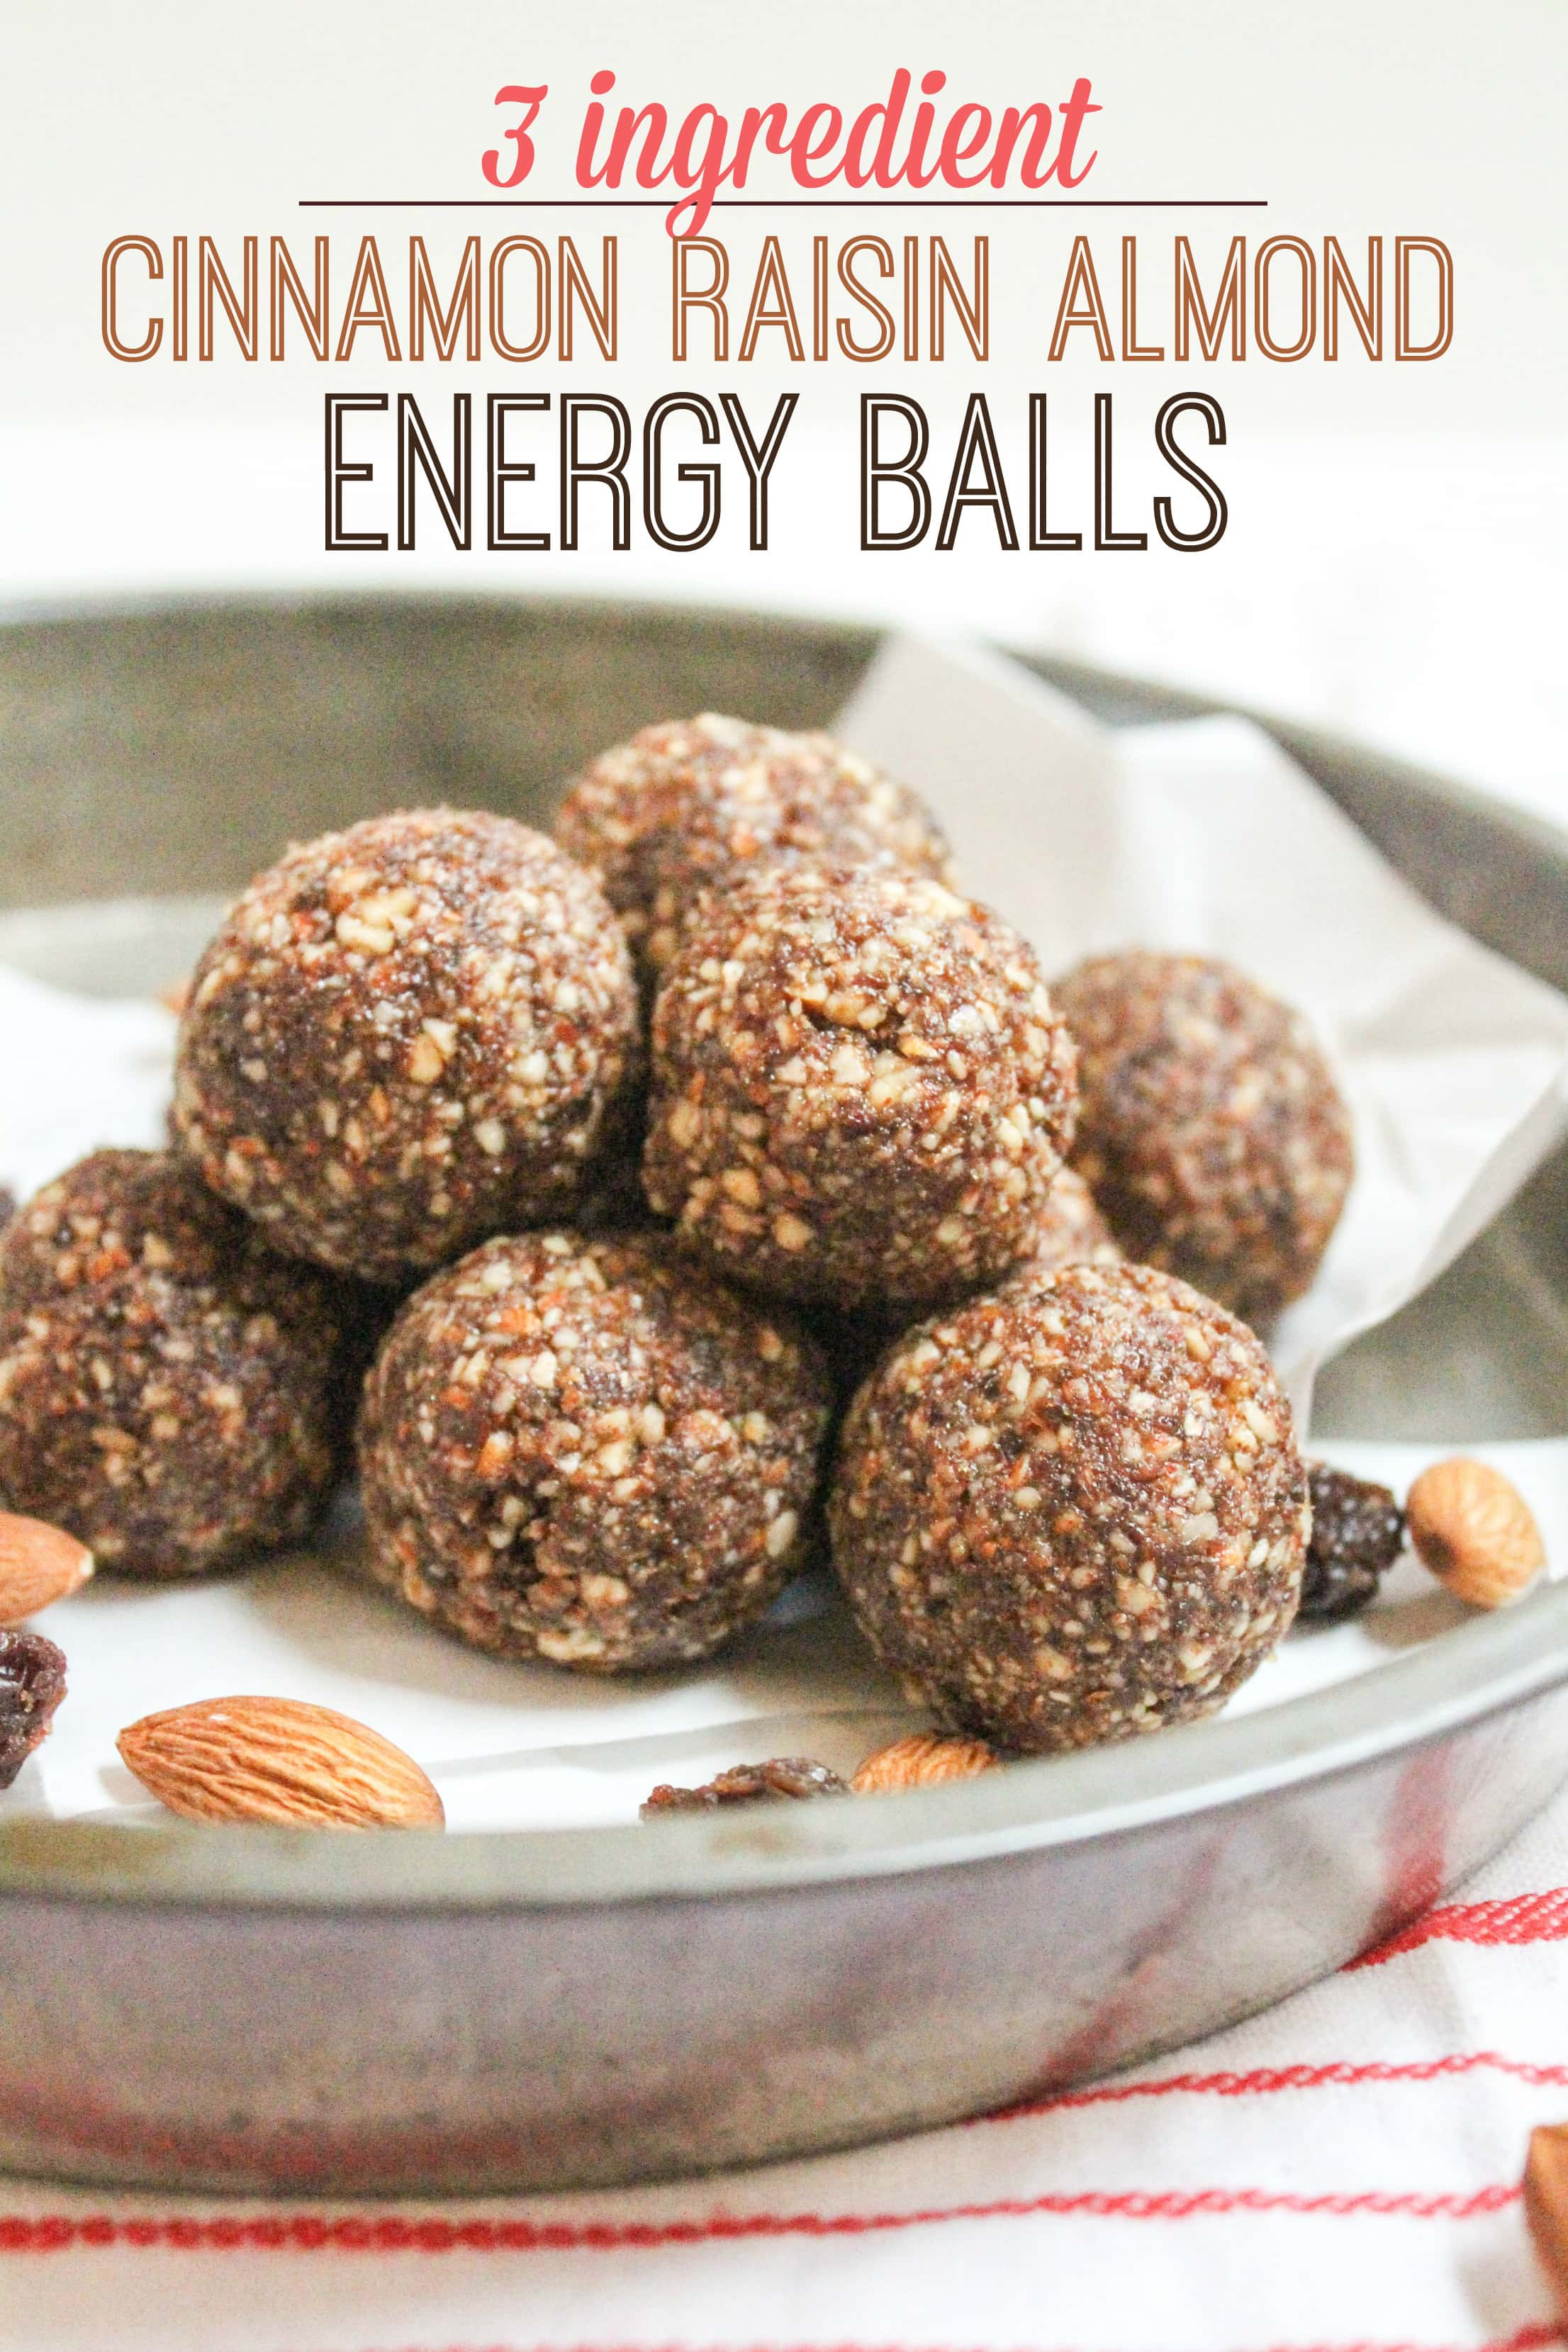 Healthy Chocolate Balls Without Food Processor